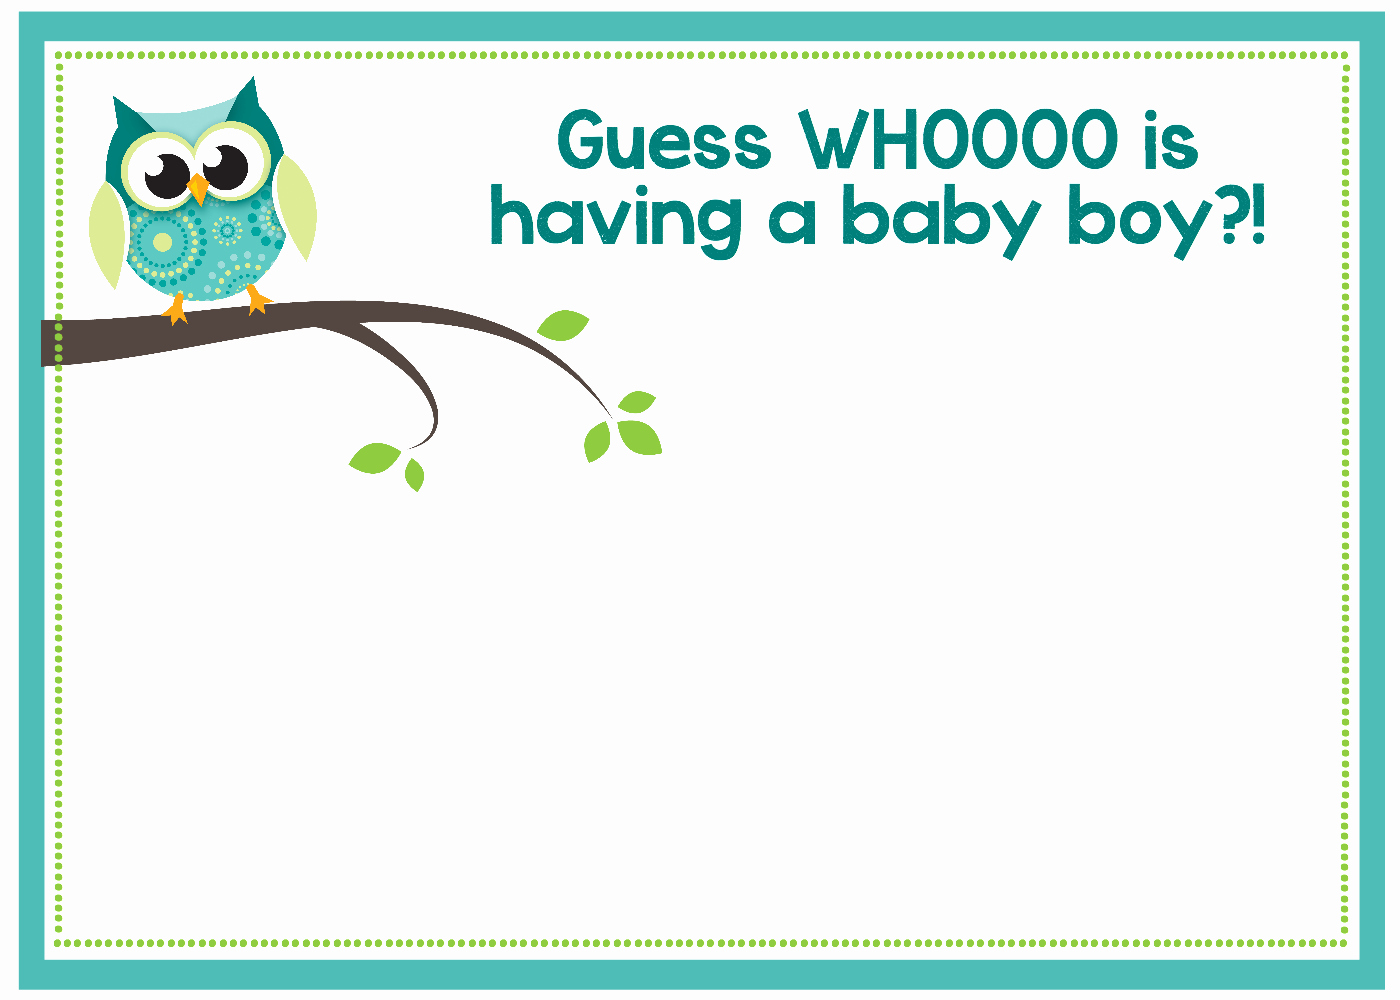 Baby Shower Invite Template Unique Free Printable Owl Baby Shower Invitations & Other